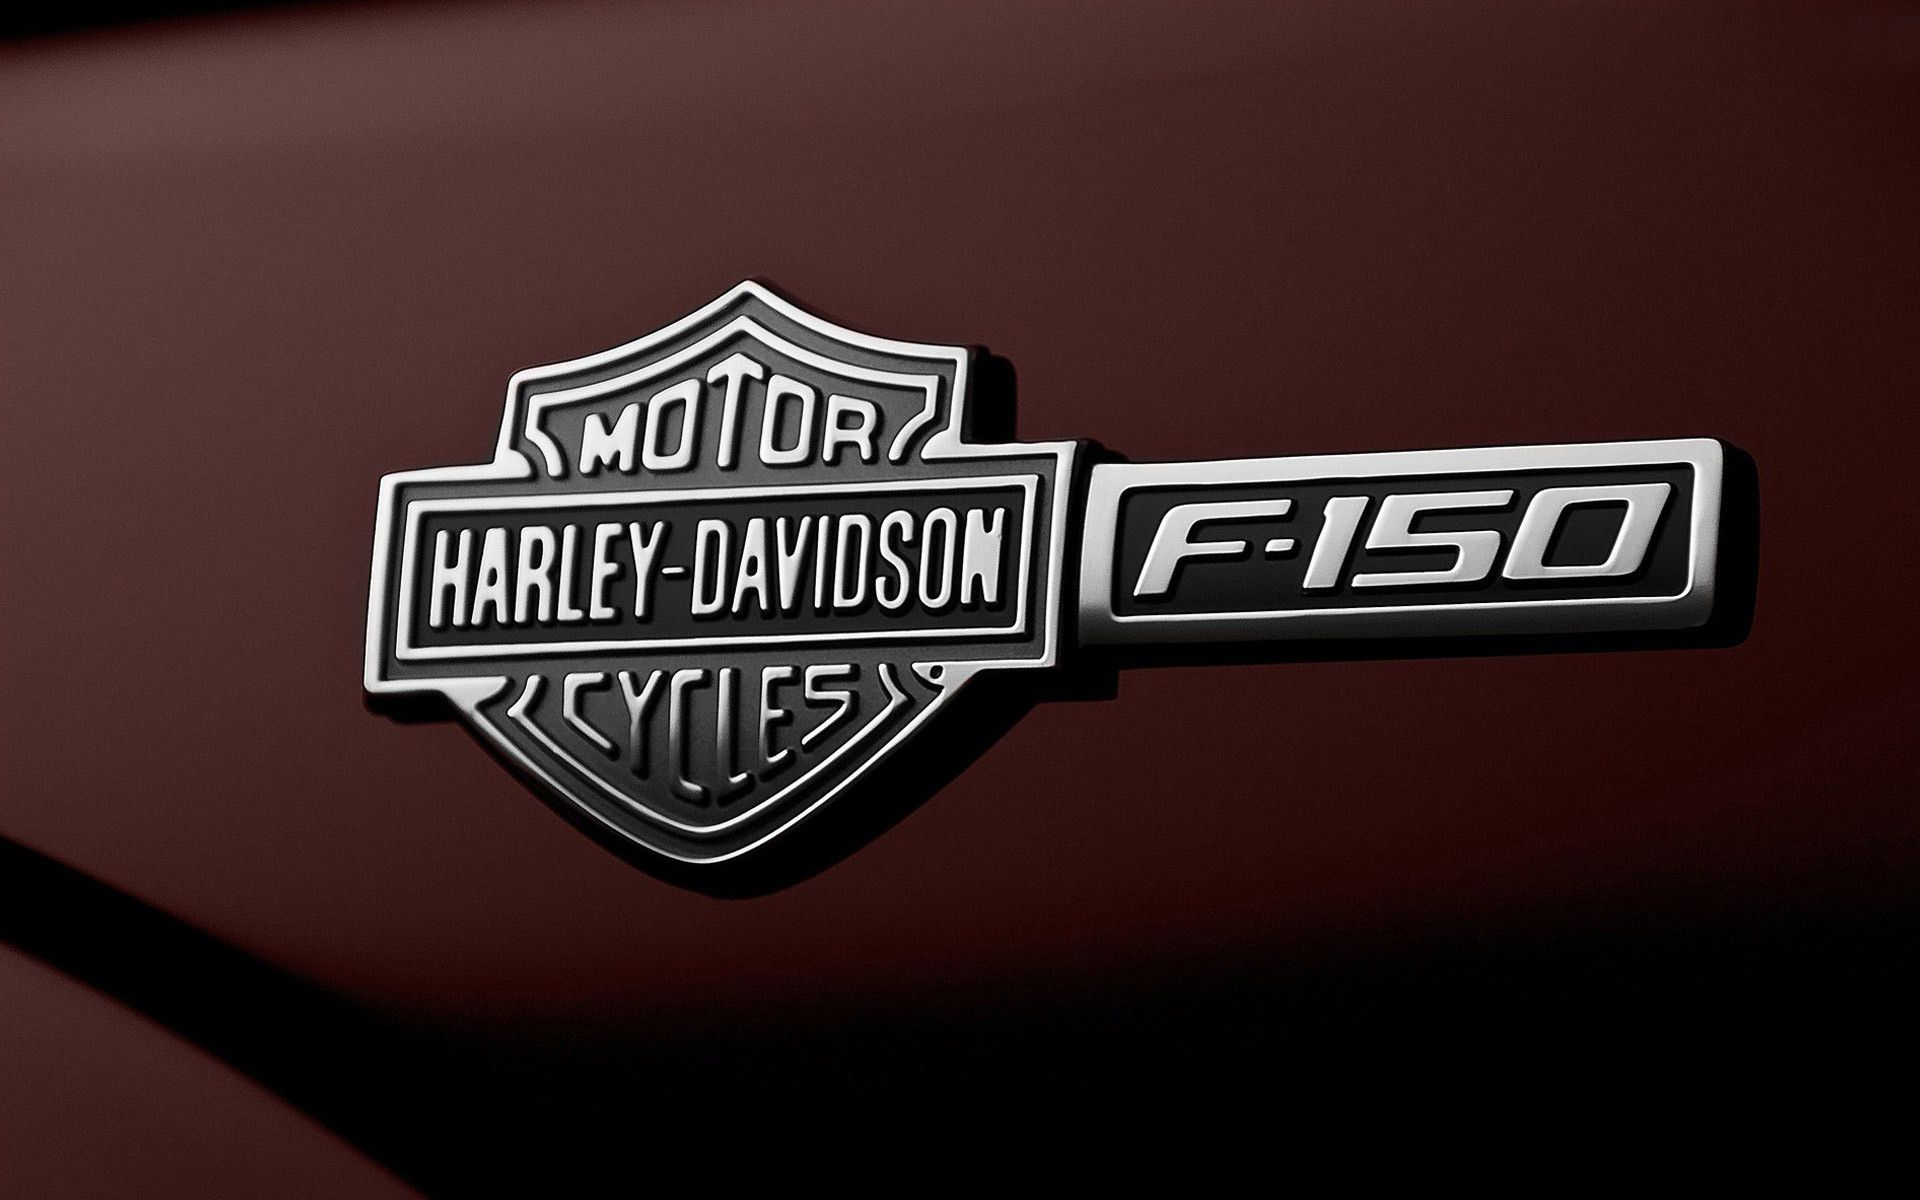 Harley Davidson Logo Wallpapers - Wallpaper Cave